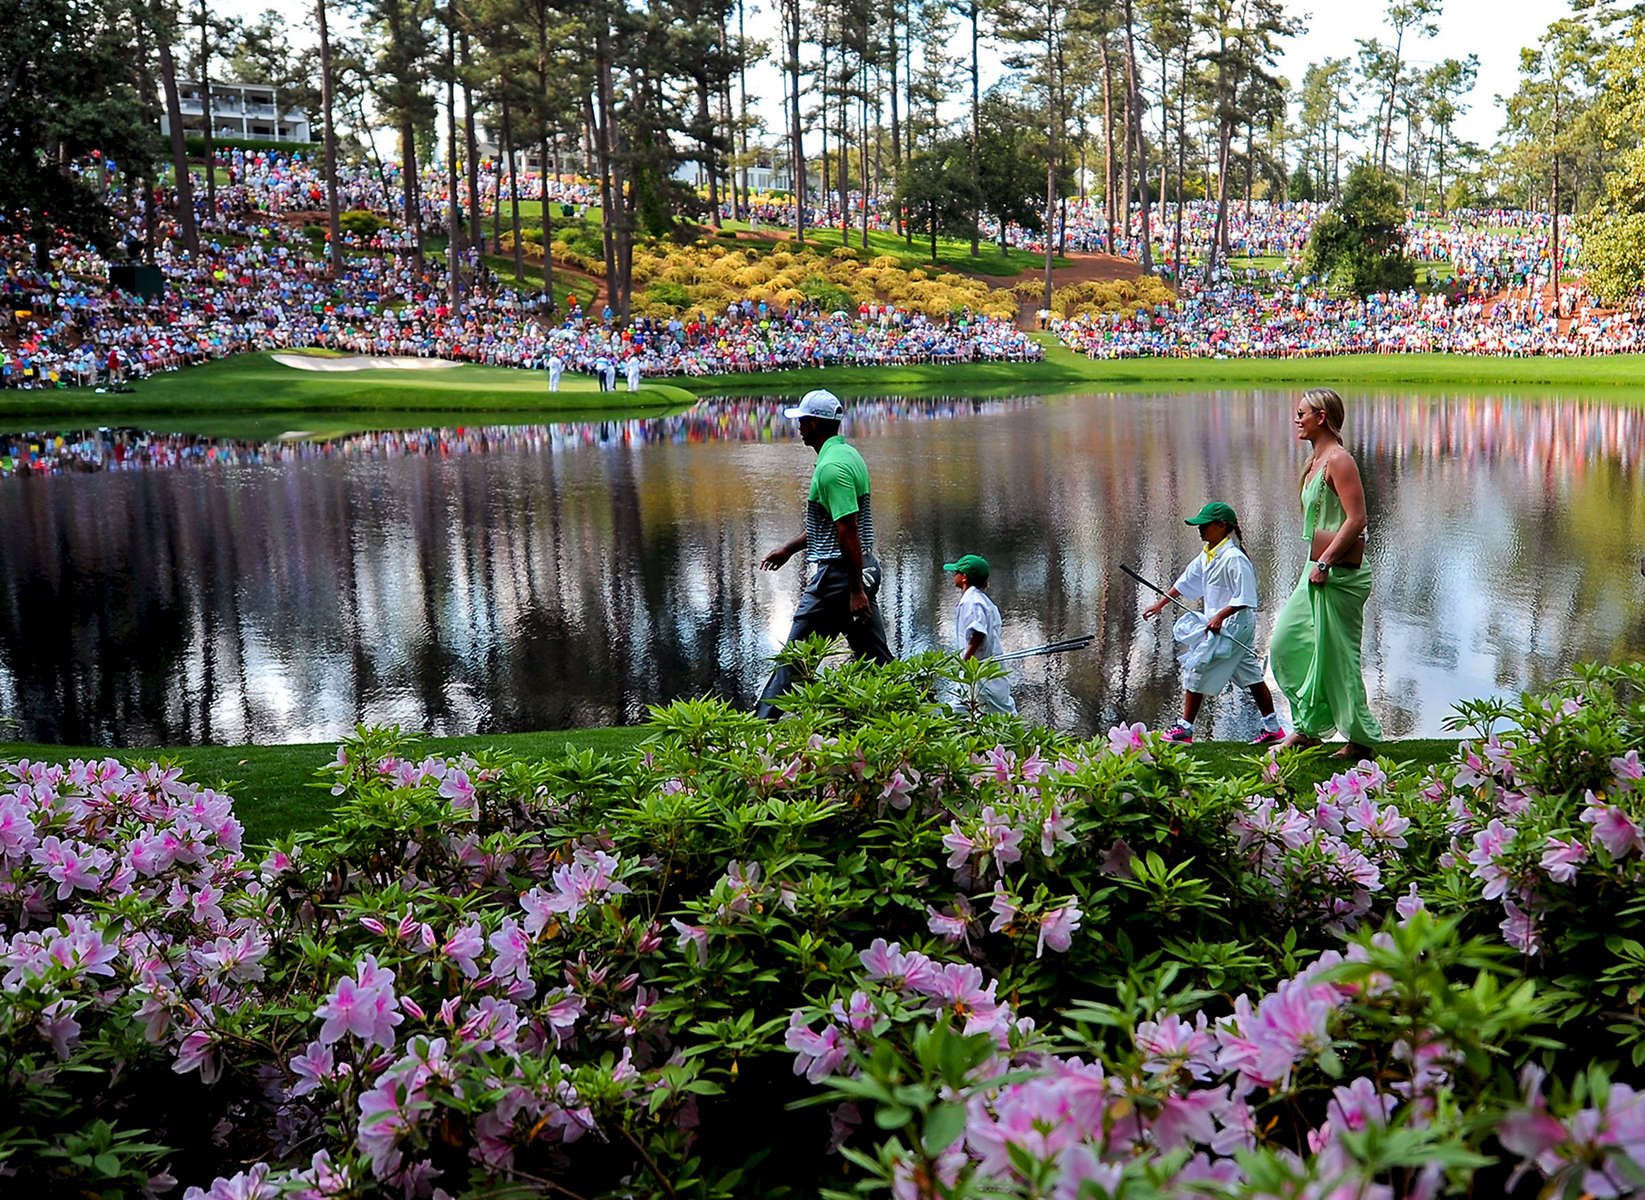 Third Place | Pictorial Jeff Siner, The Charlotte ObserverTiger Woods leads his son, Charlie, daughter, Sam and partner Lindsey Vonn past the azaleas toward the ninth green at Augusta National Golf Club.